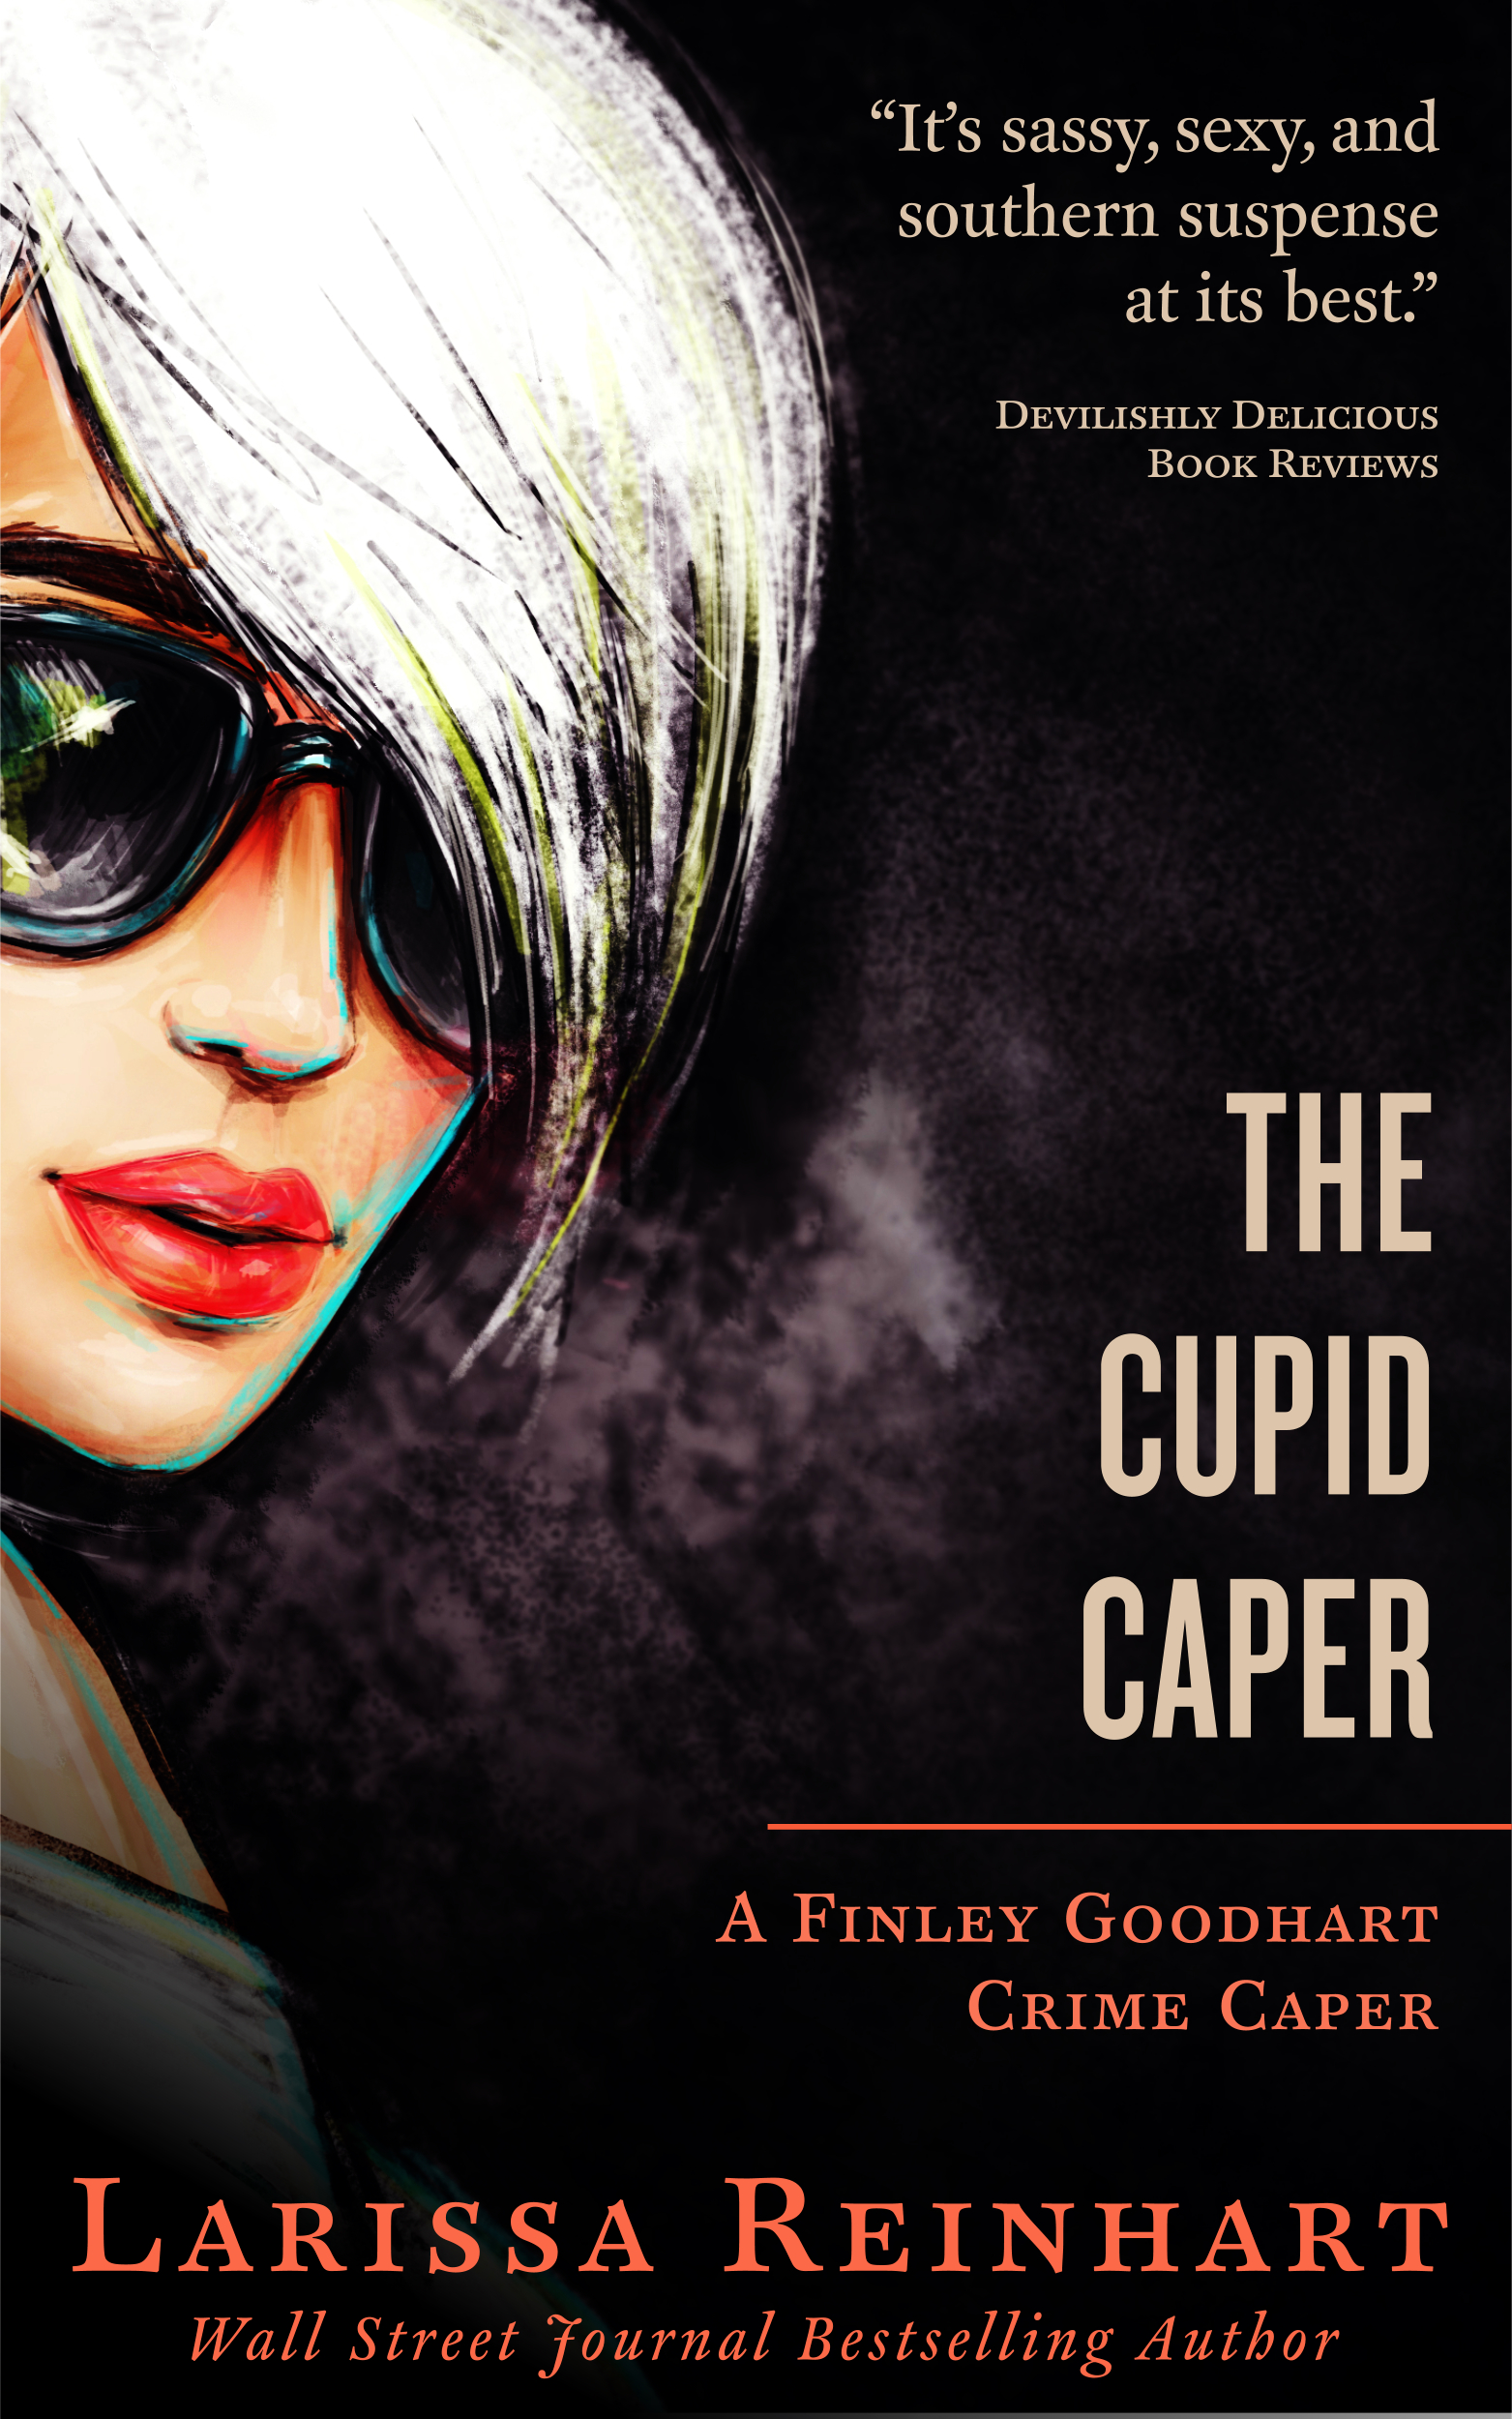 The Cupid Caper